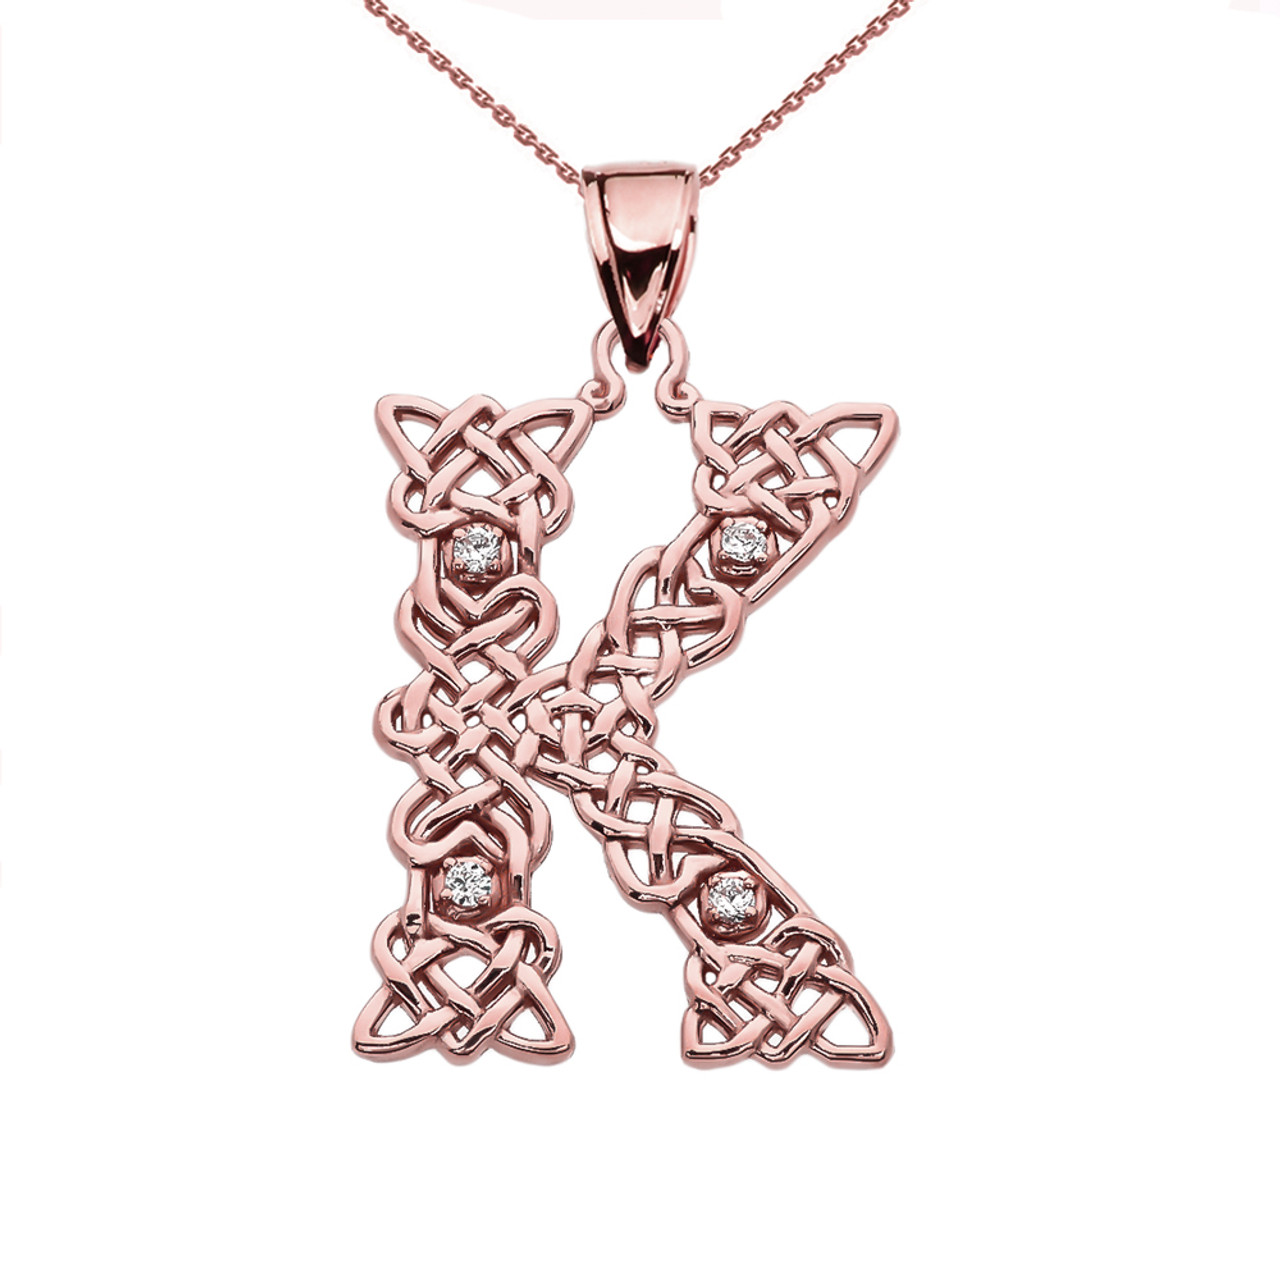 Diamond k initial in celtic pattern rose gold pendant necklace k initial in celtic knot pattern rose gold pendant necklace with diamond mozeypictures Images